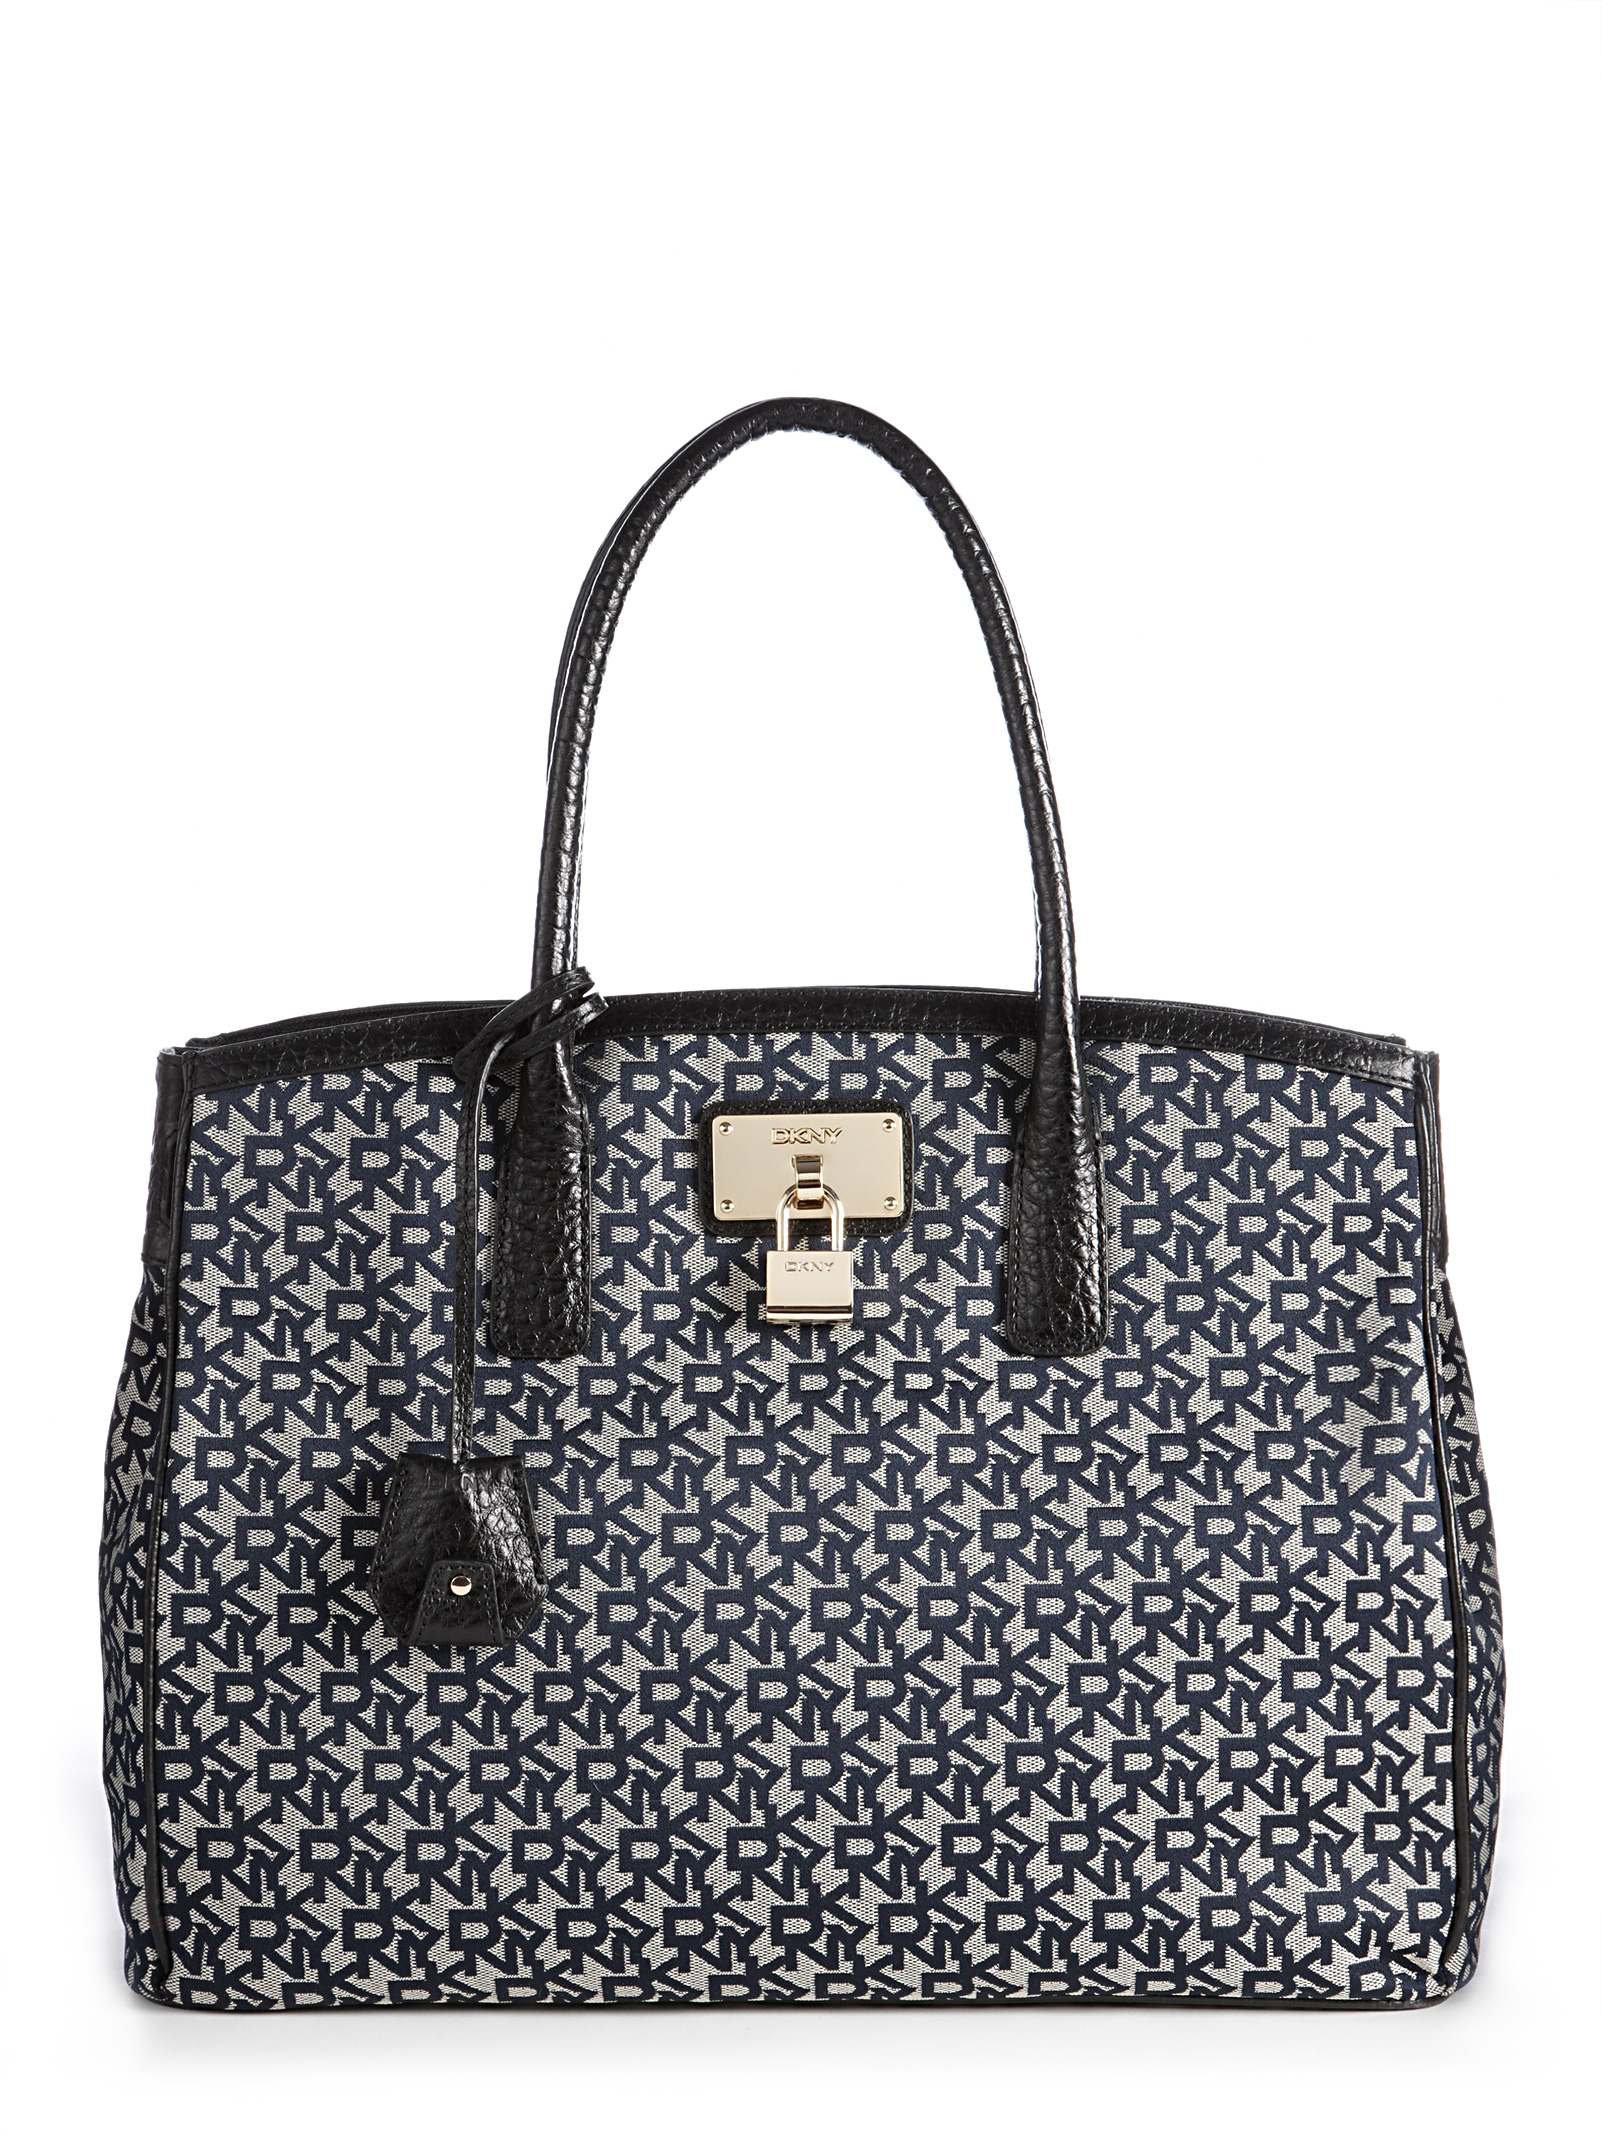 Buy and sell authenticated designer handbags at Ireland's premier Designer Exchange & Resale specialising in pre-loved, Chanel, Louis Vuitton, Hermes & more. We offer cash upfront for LV Neverfulls, Gucci Marmots, Chanel flaps - see our designer wishlist for more details.